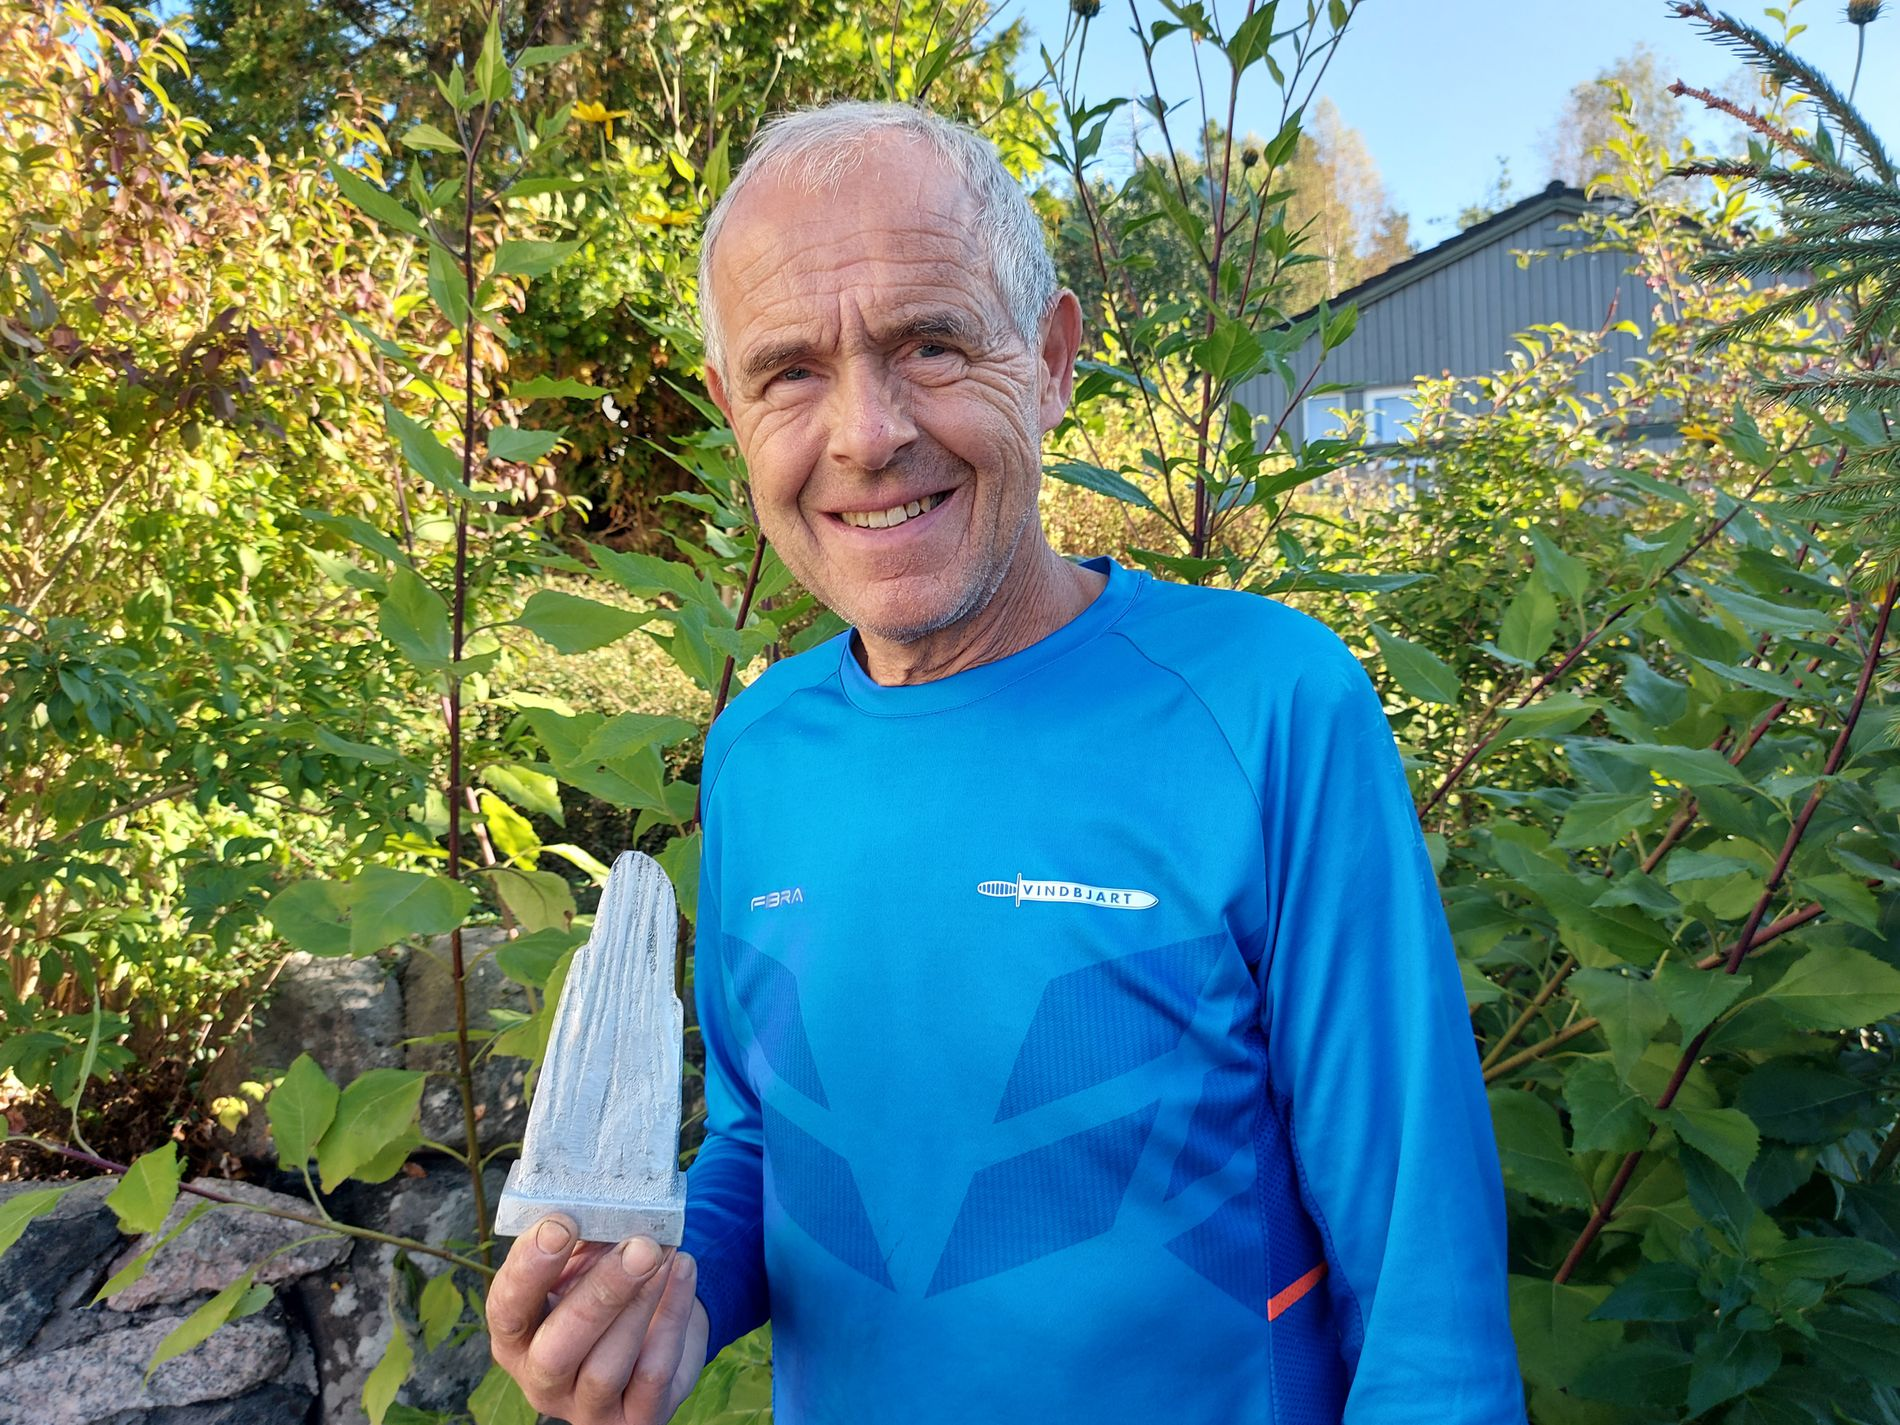 Harry Alf Andersen with the award that will be delivered on the day of the activity.